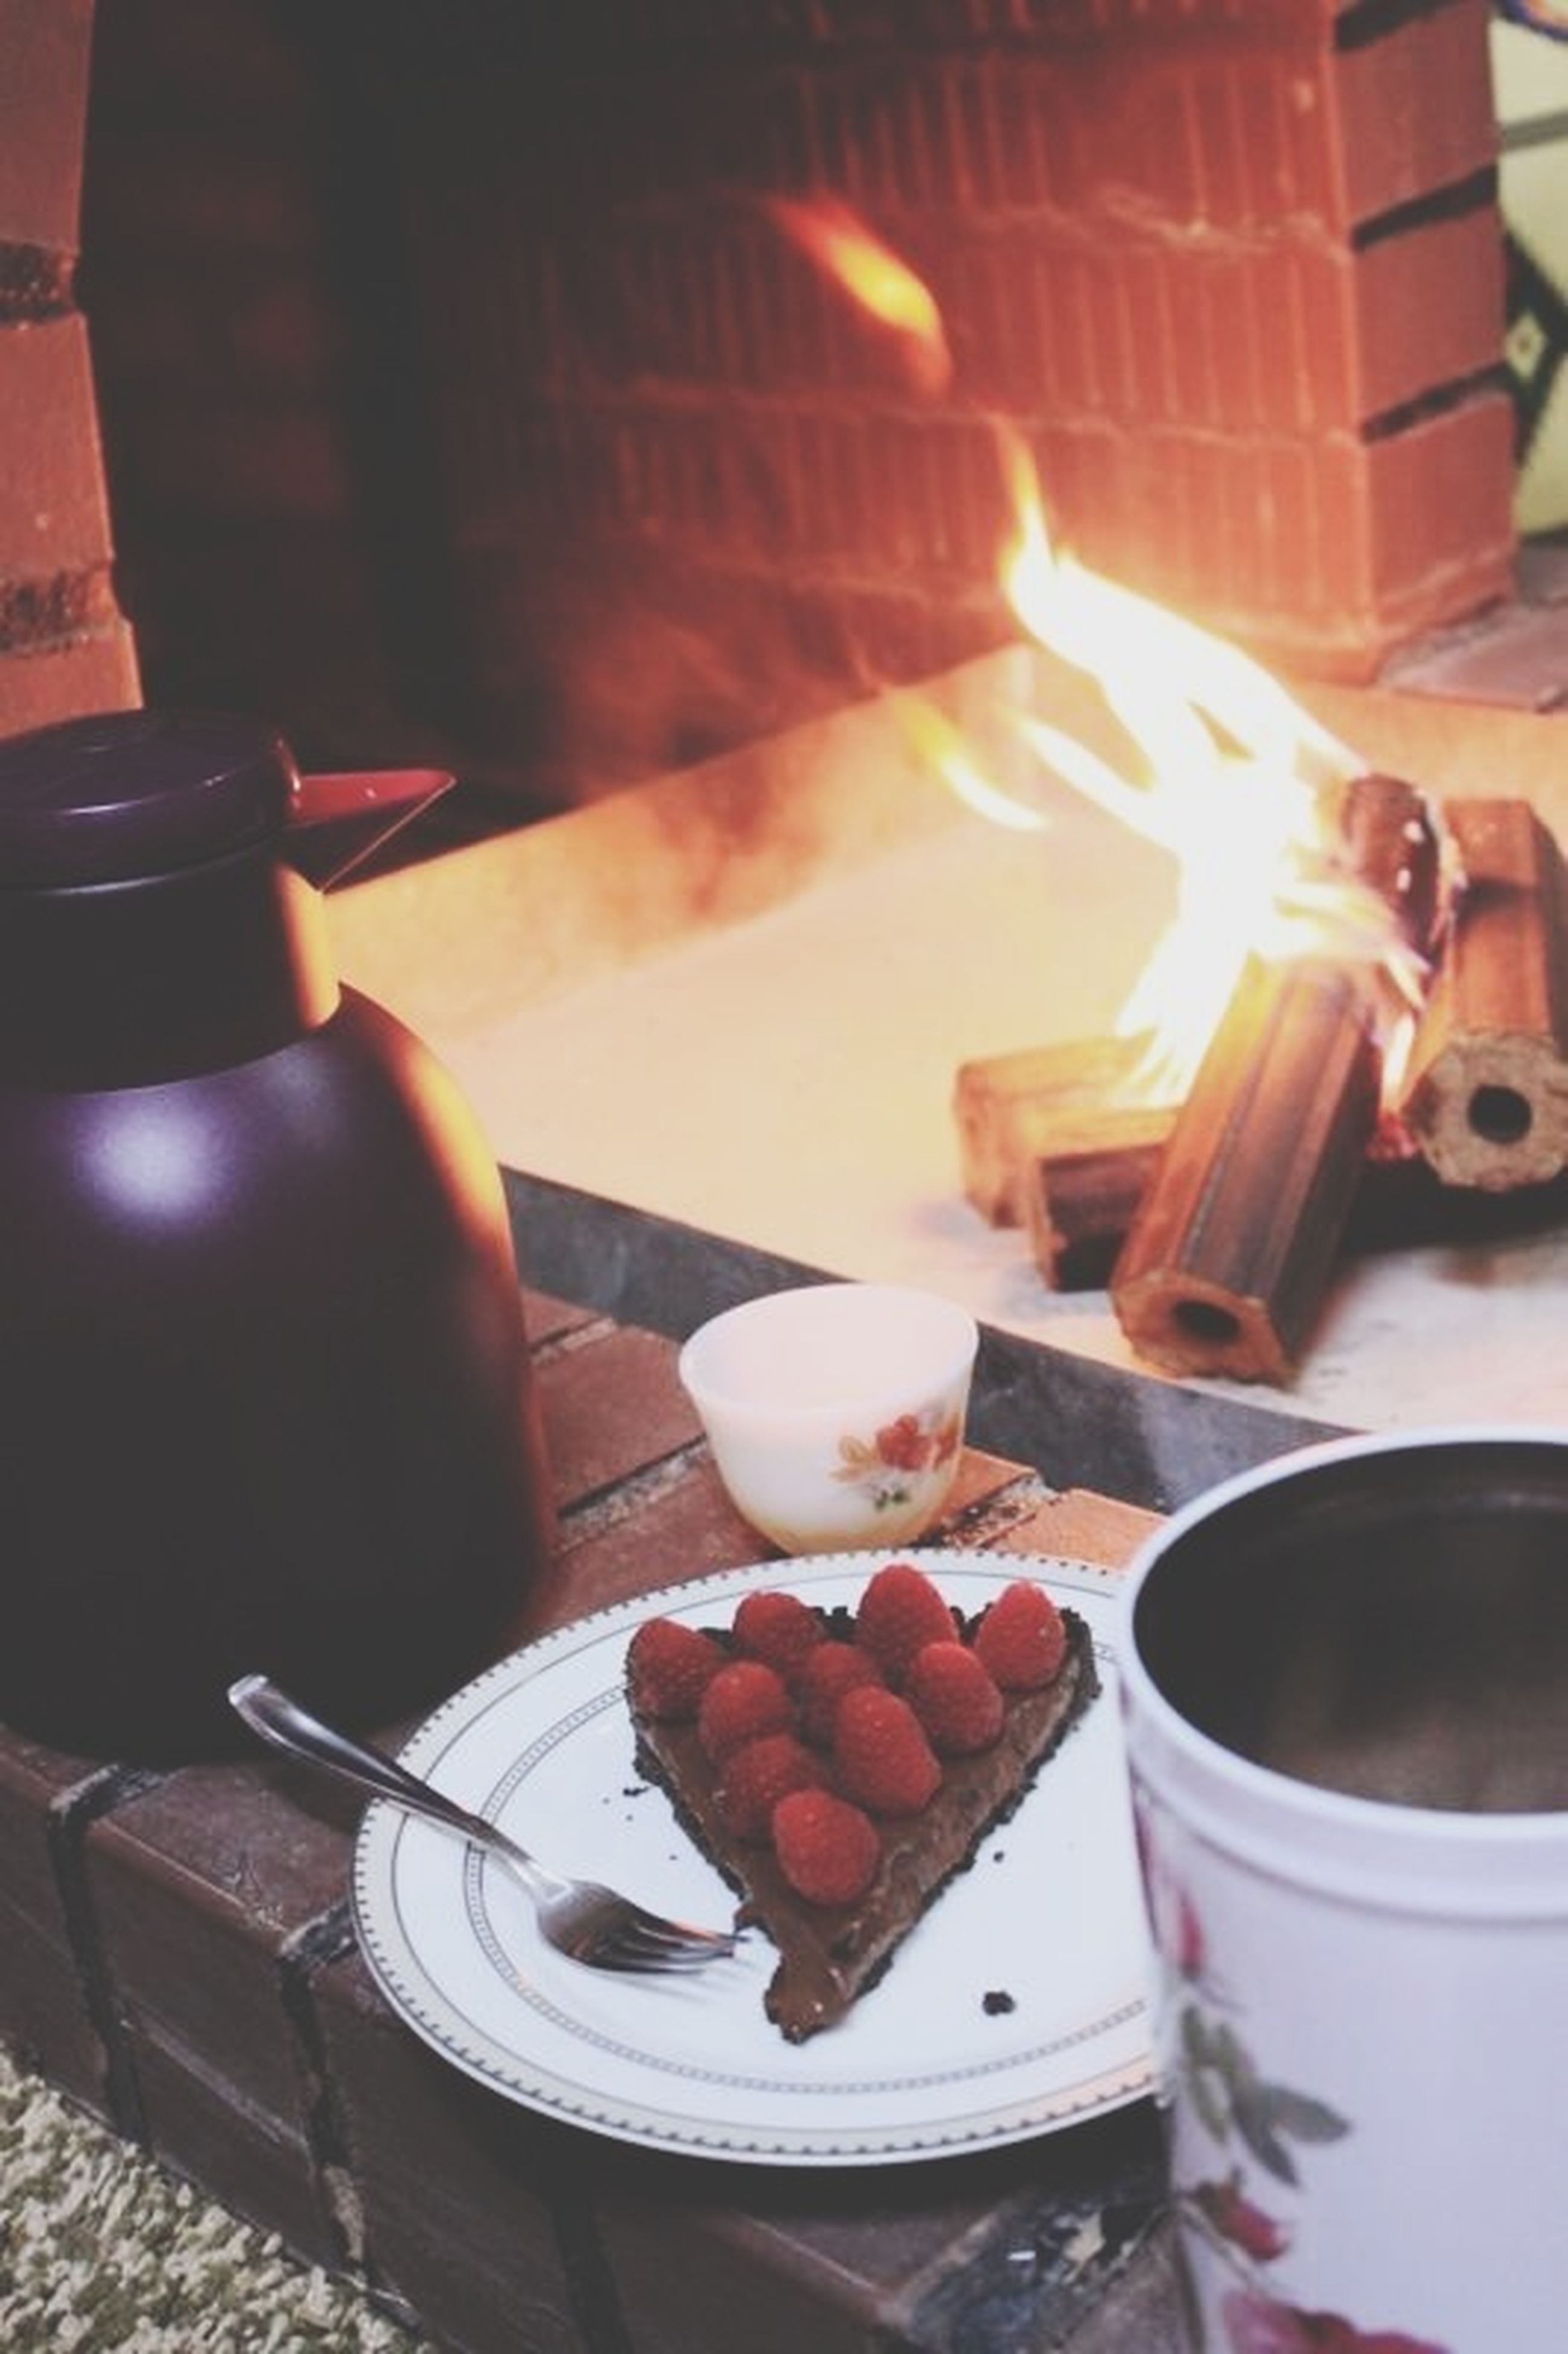 food and drink, indoors, freshness, food, table, heat - temperature, still life, sweet food, close-up, flame, burning, indulgence, dessert, ready-to-eat, candle, fire - natural phenomenon, cake, unhealthy eating, preparation, high angle view